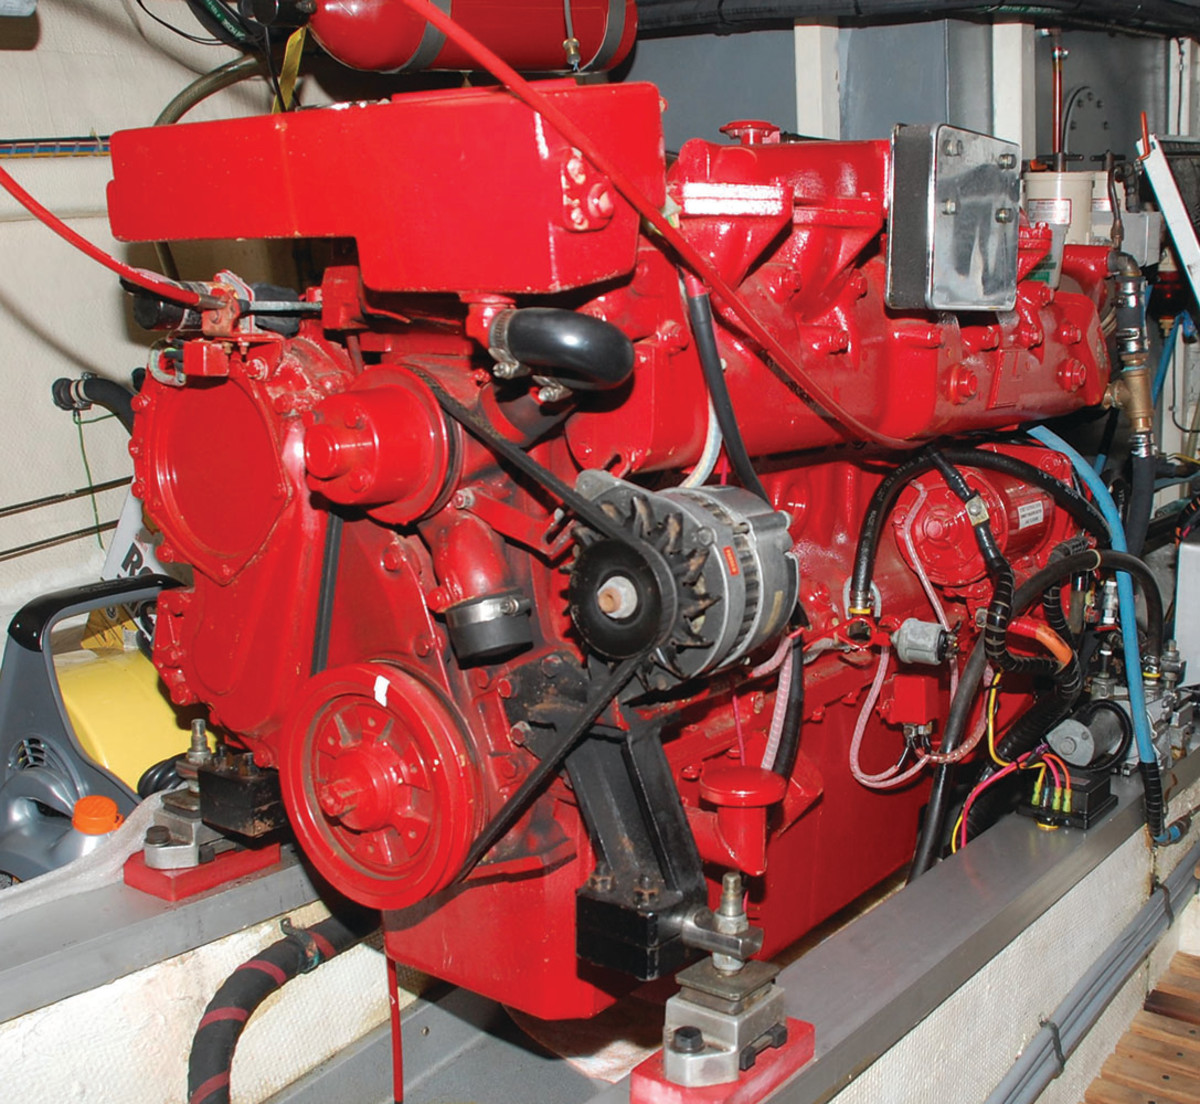 Well maintained, properly sized for the application, and operated within the optimal minimum and maximum loads, this engine has a good shot at running for 10,000 hours—and possibly much more.